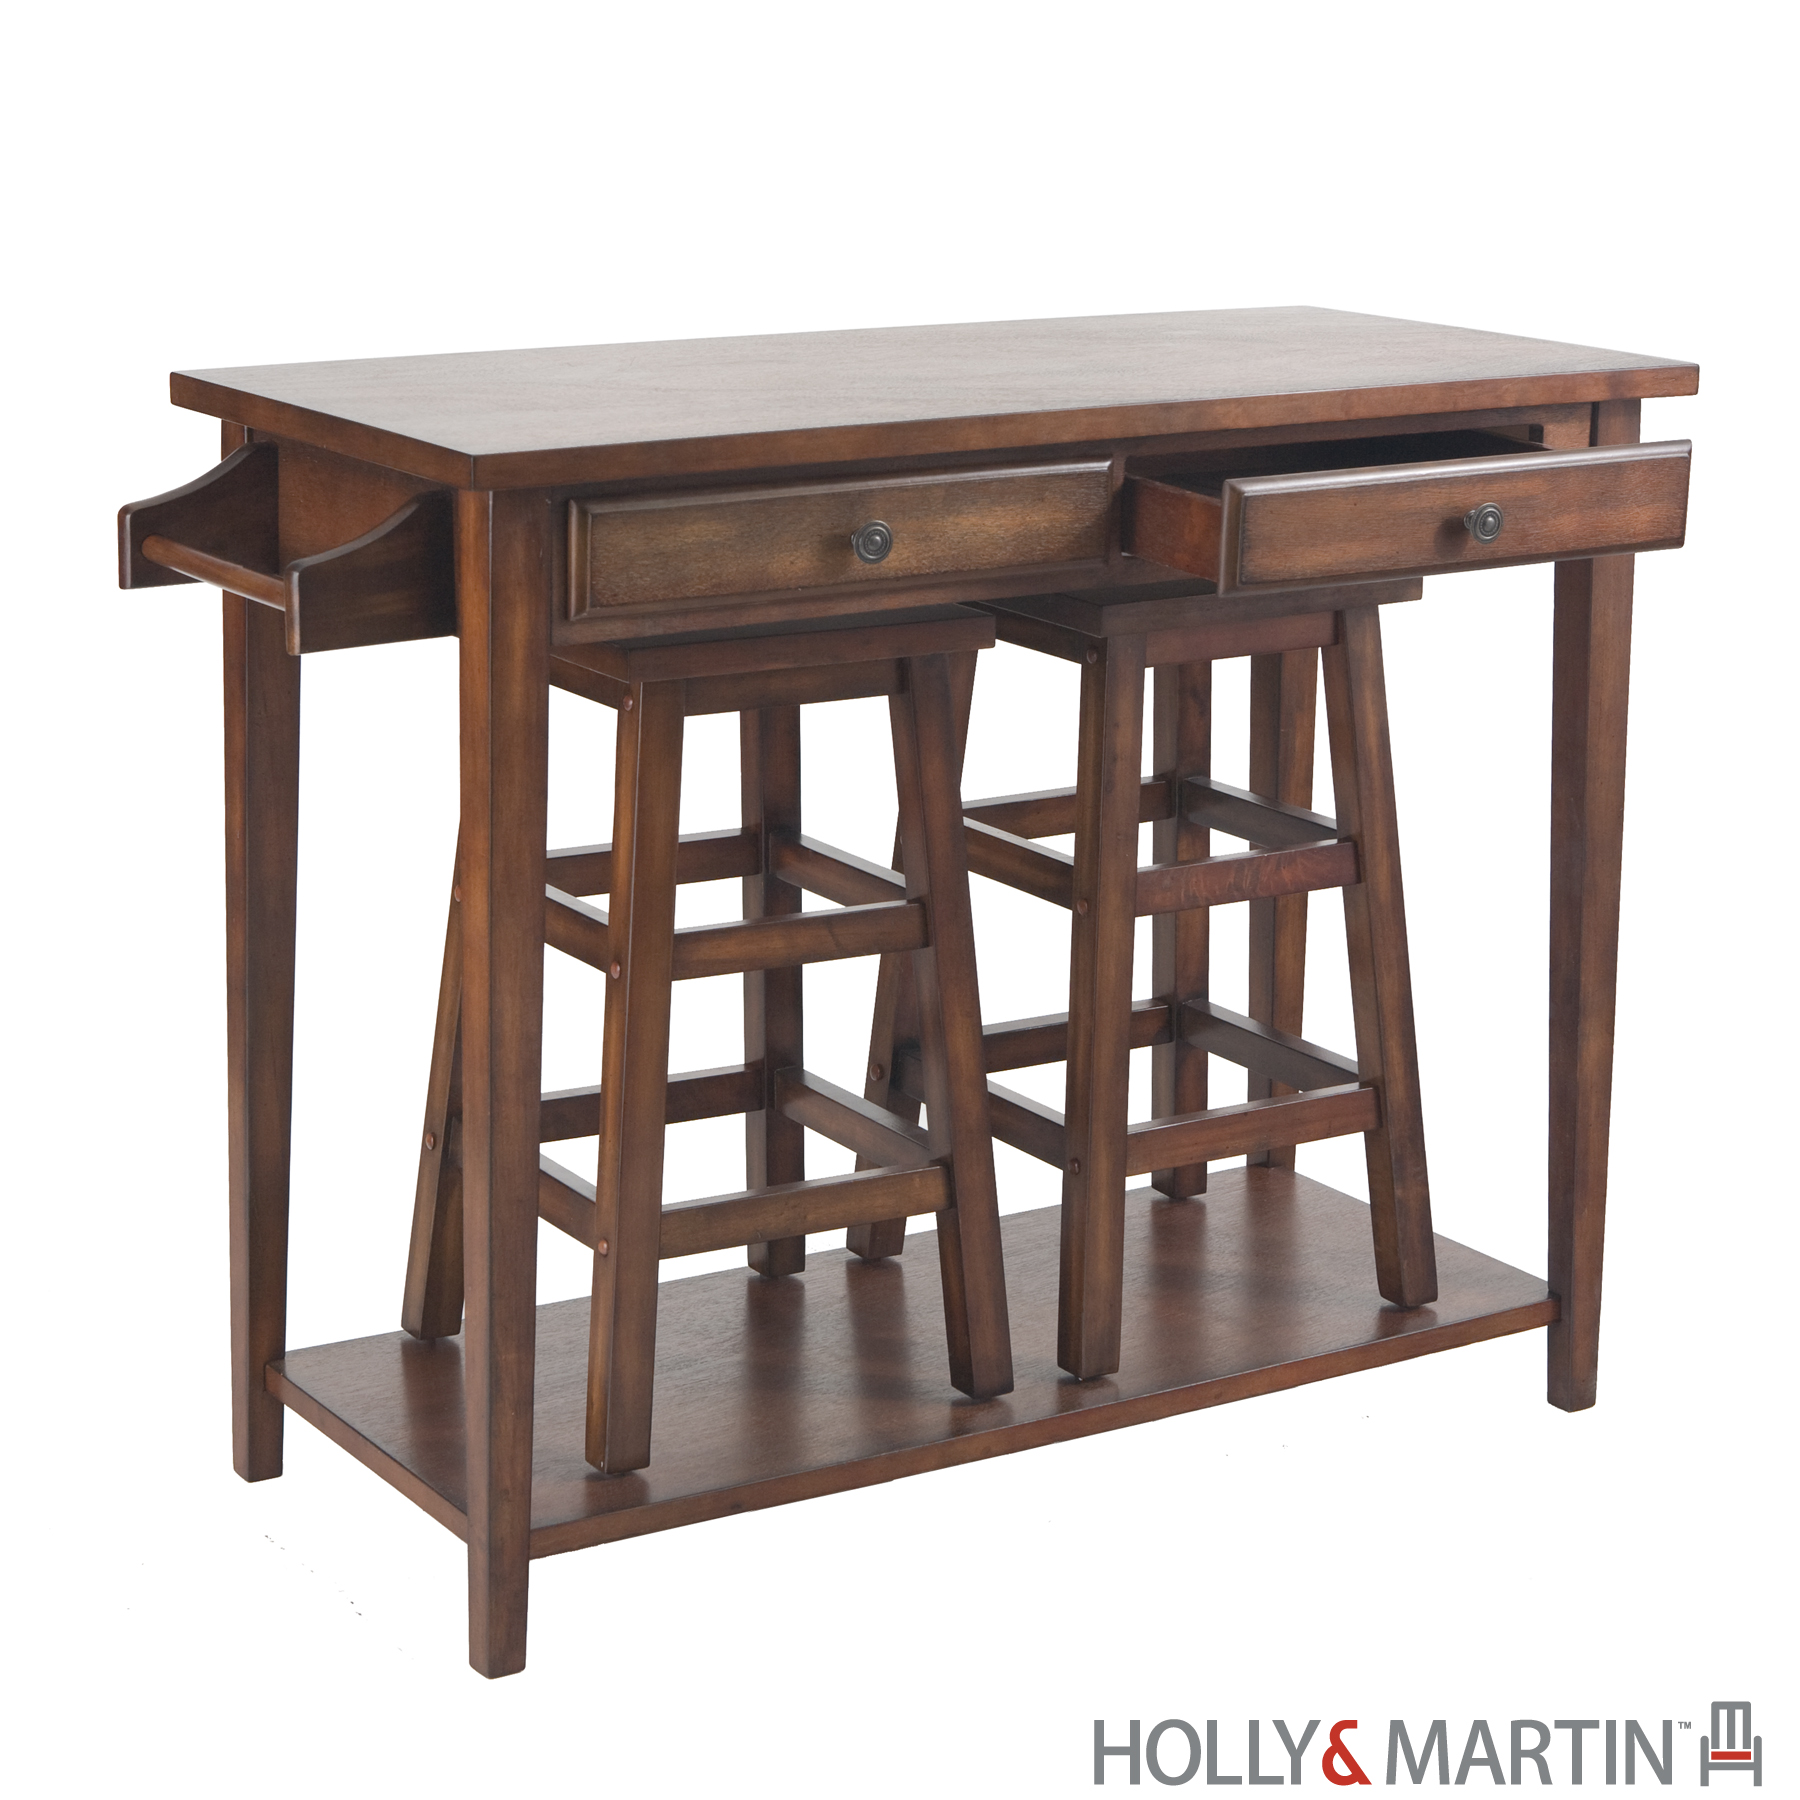 Dontos Industrial Kitchen Cart Southern Enterprises: Breakfast Bar And Stools